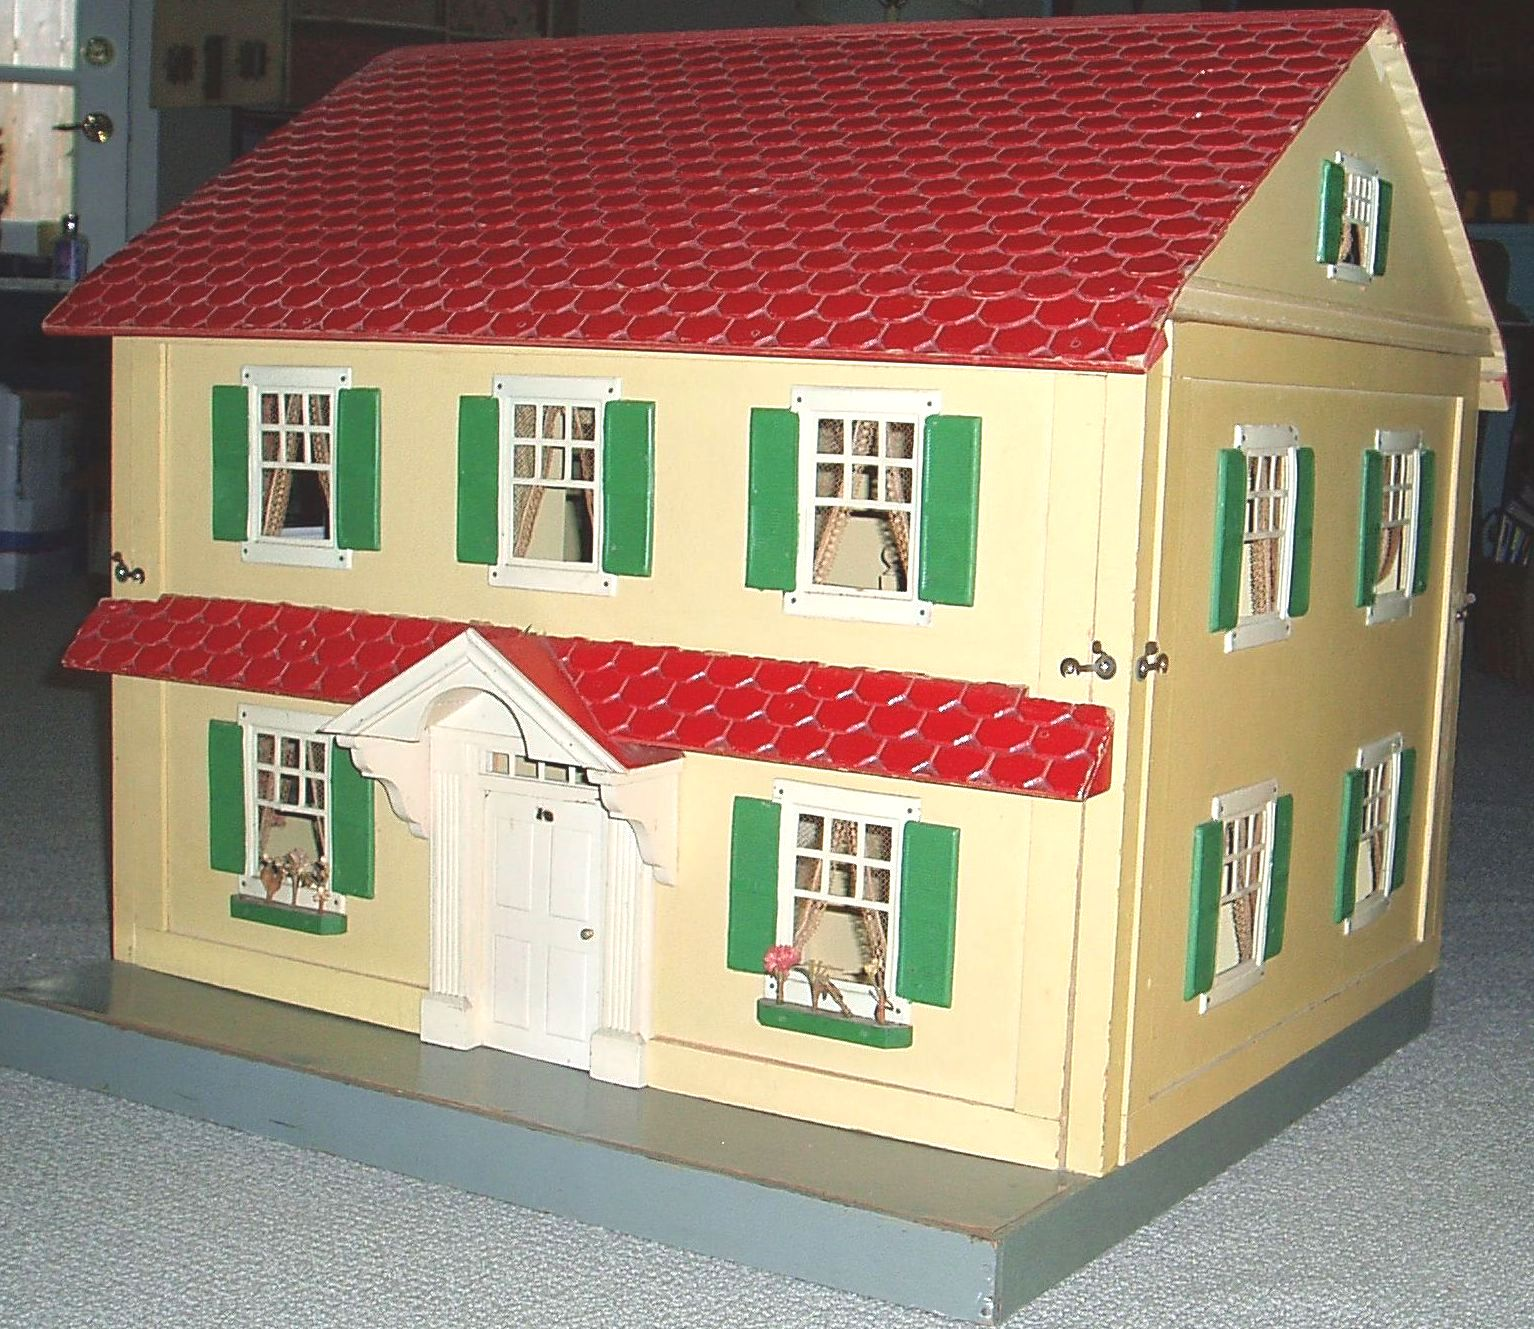 8 room Schoenhut dollhouse with front similar to previous house, taken at angle showing front and one side to show double depth of house